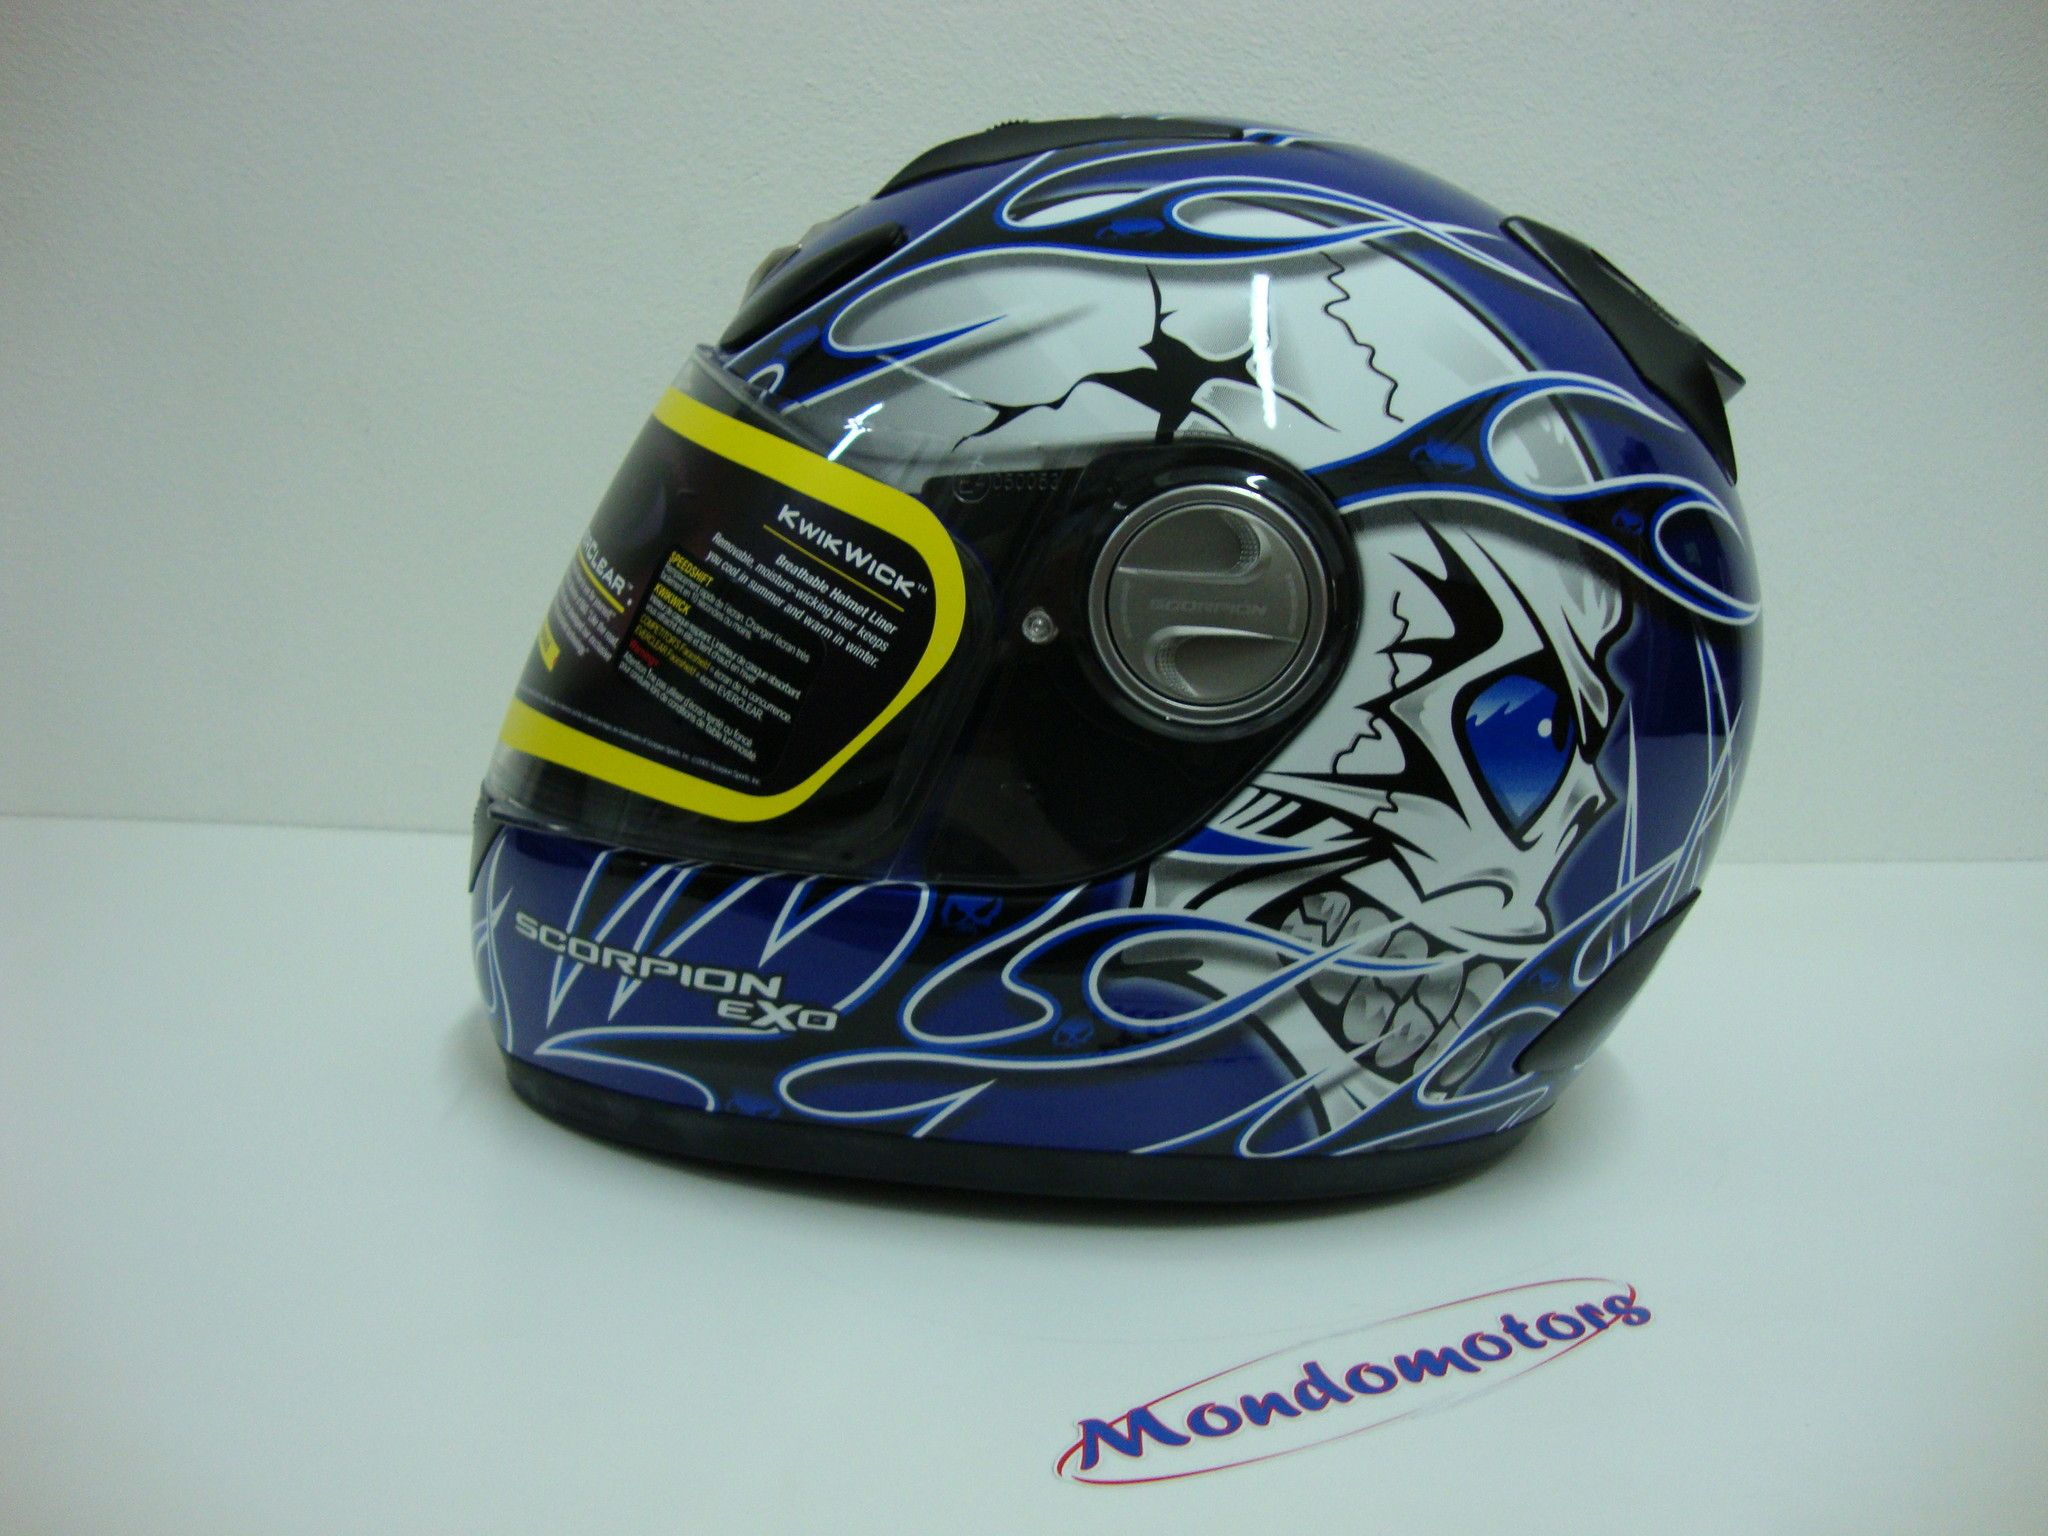 Casco Scorpion EXO 700 Crackhead